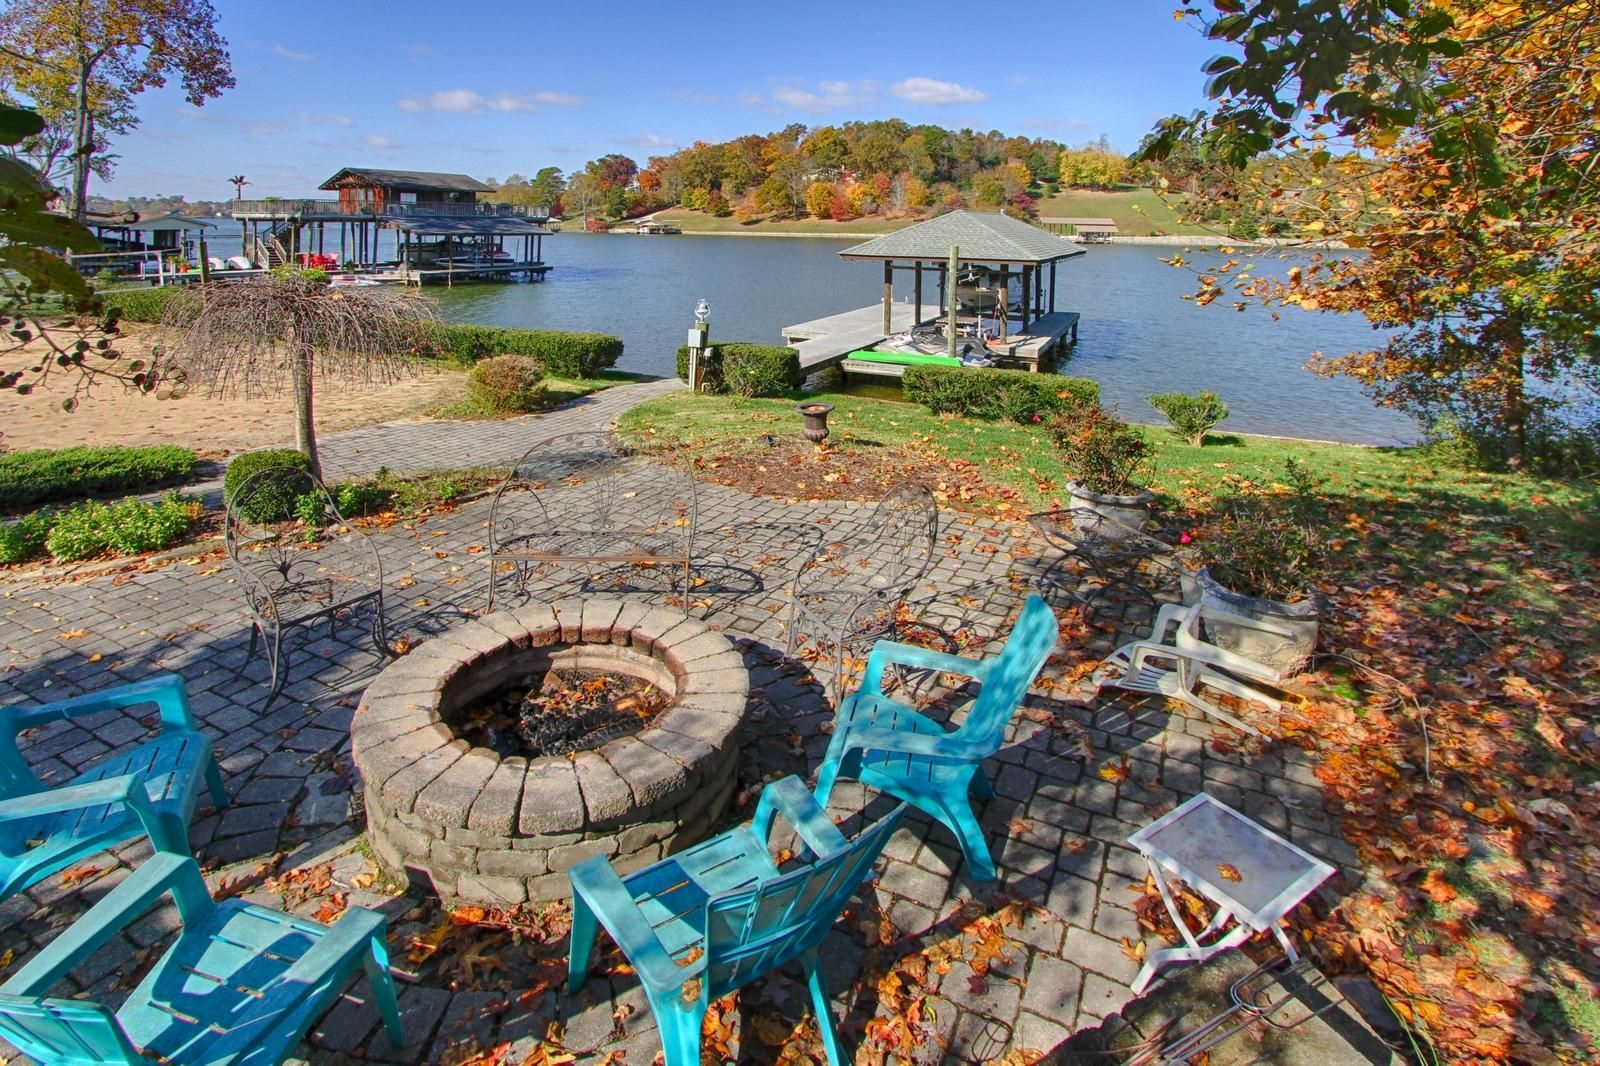 Paver firepit by the lake